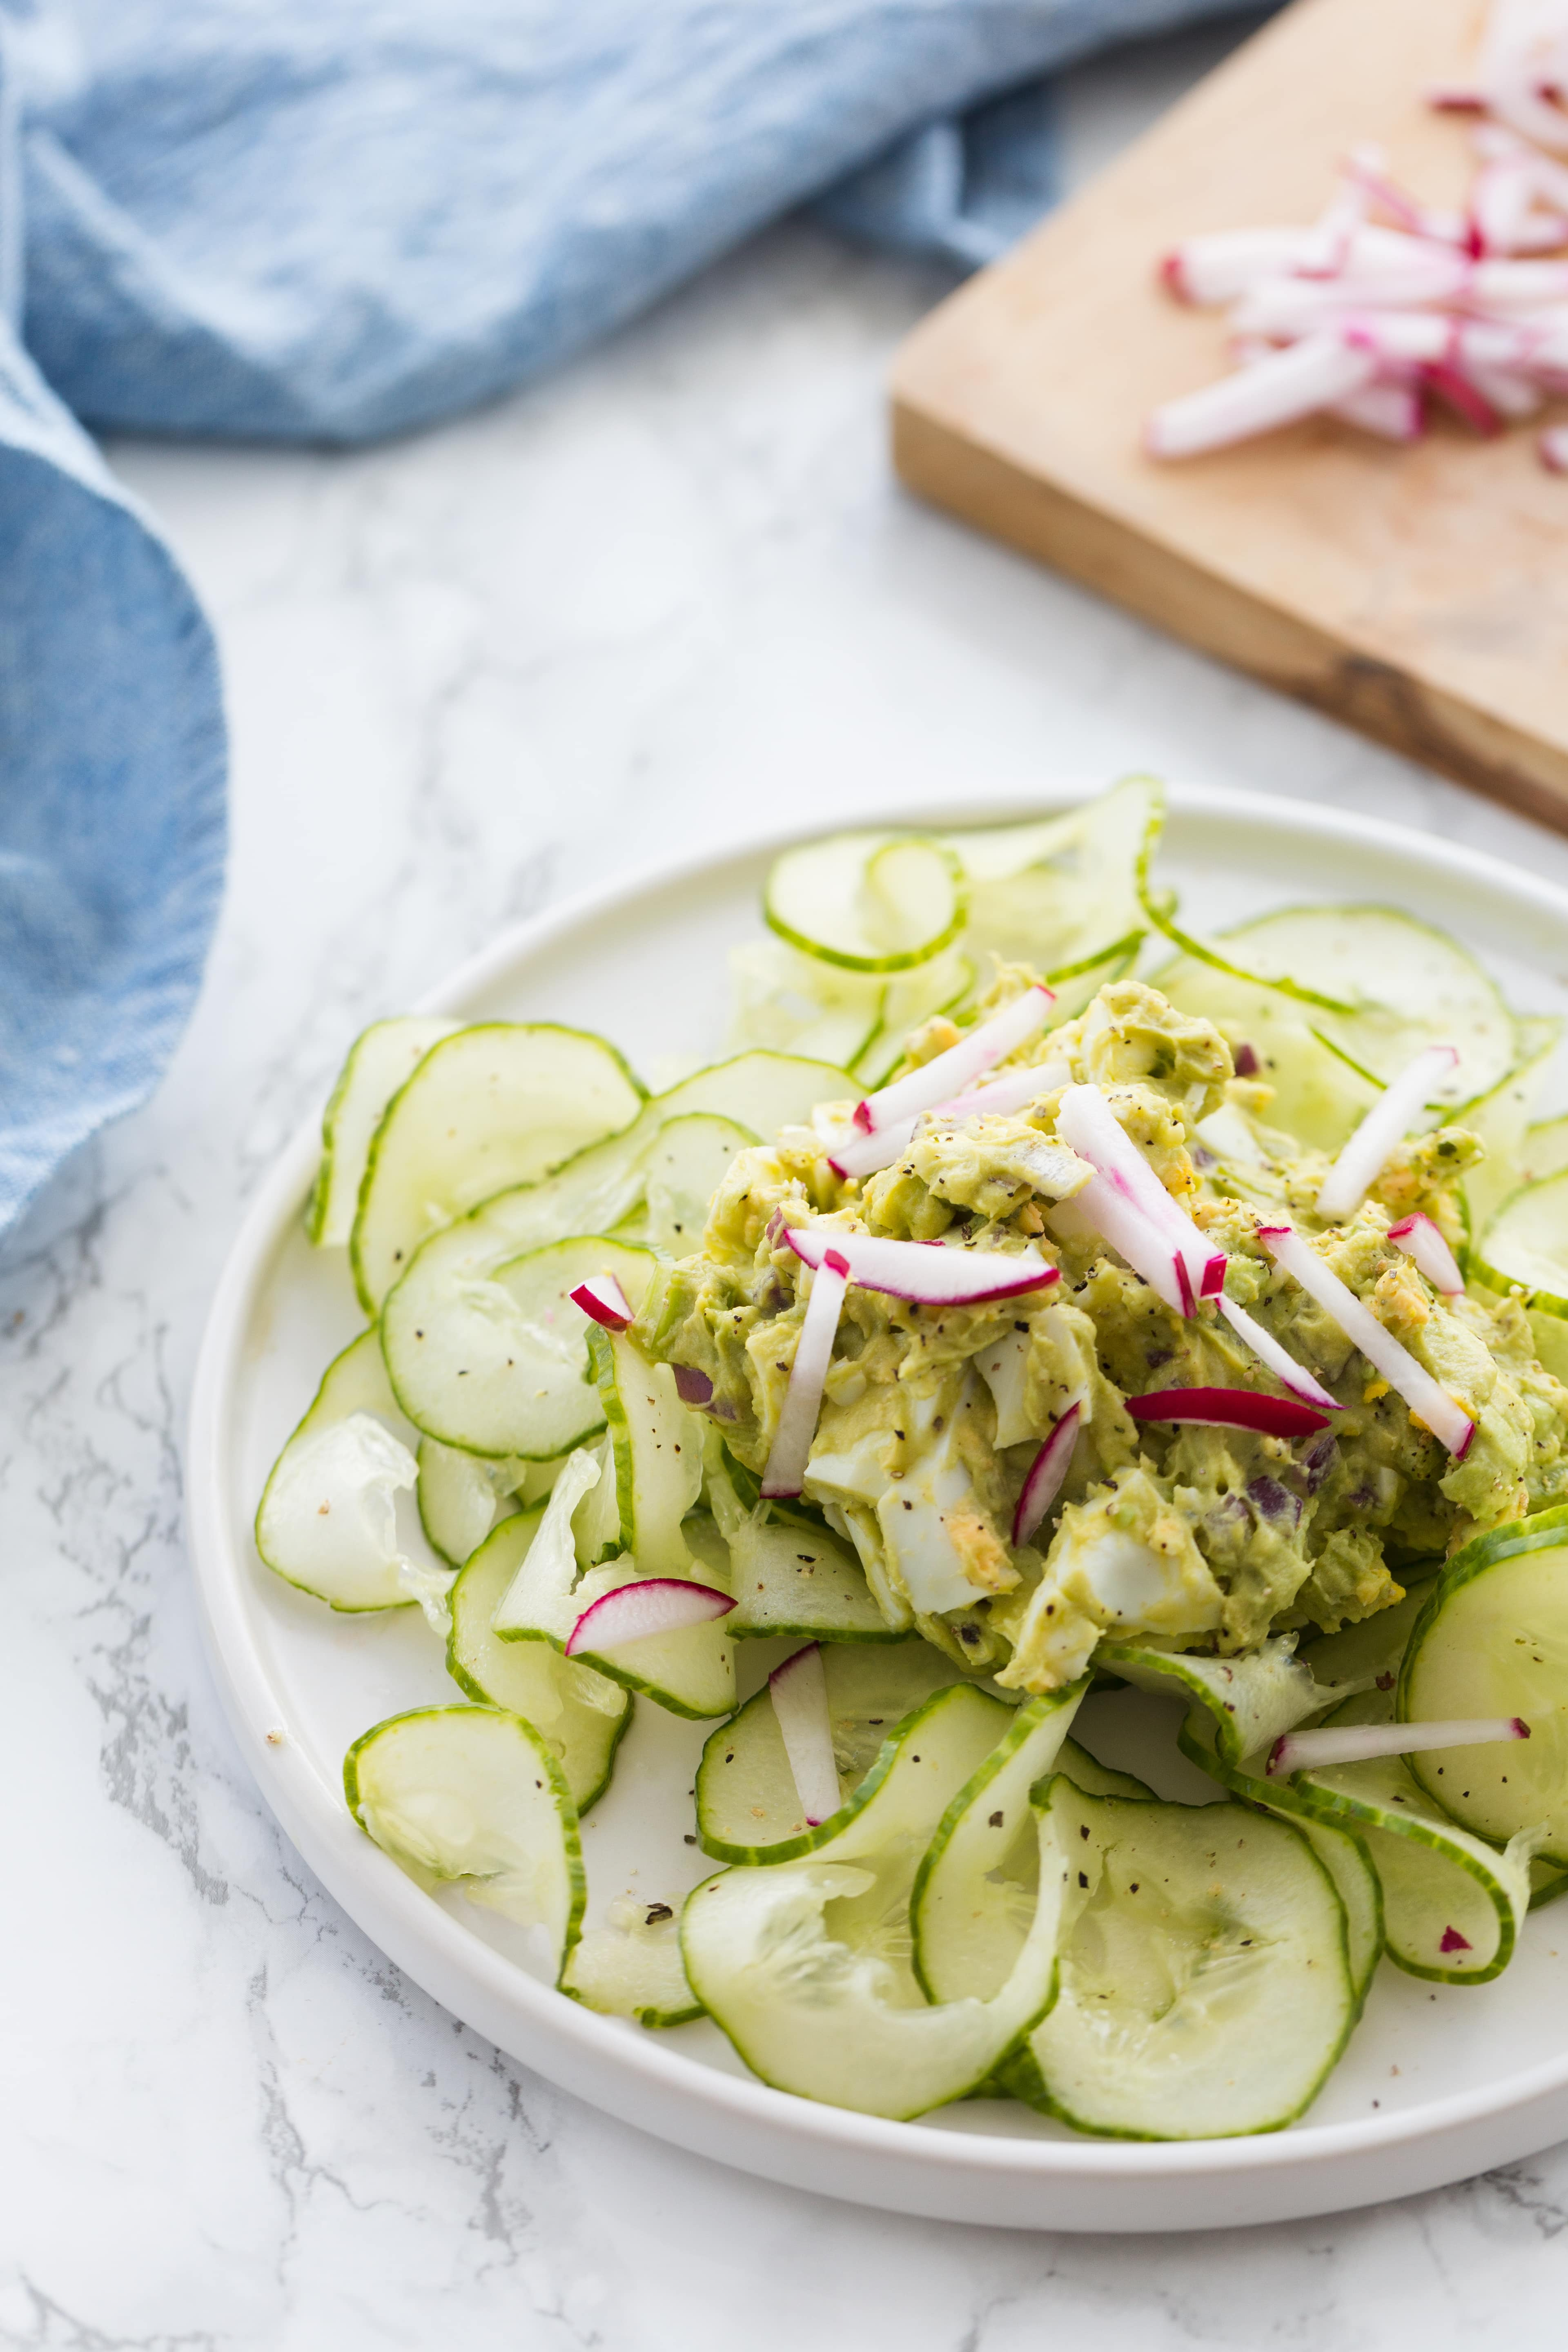 Avocado Egg Salad with Spiralized Cucumbers